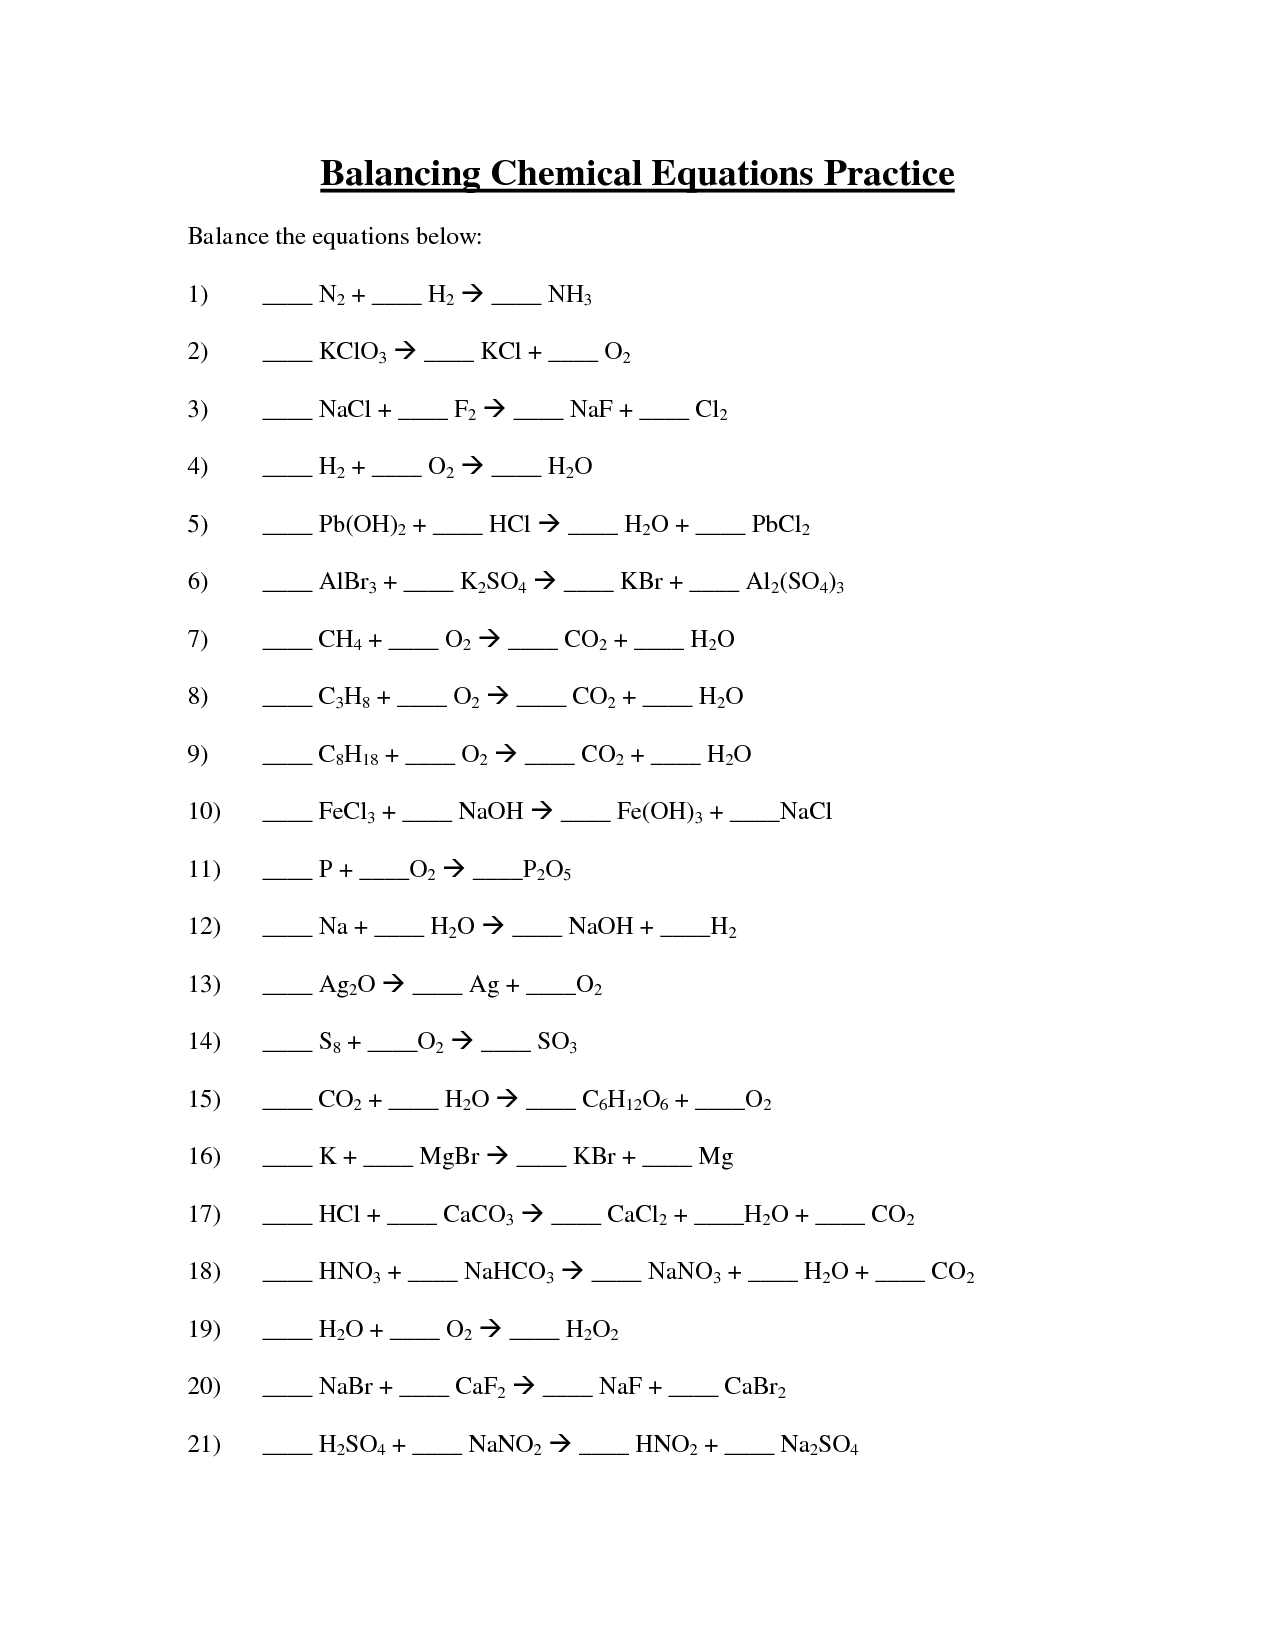 16 Best Images Of Practice Balancing Equations Worksheet